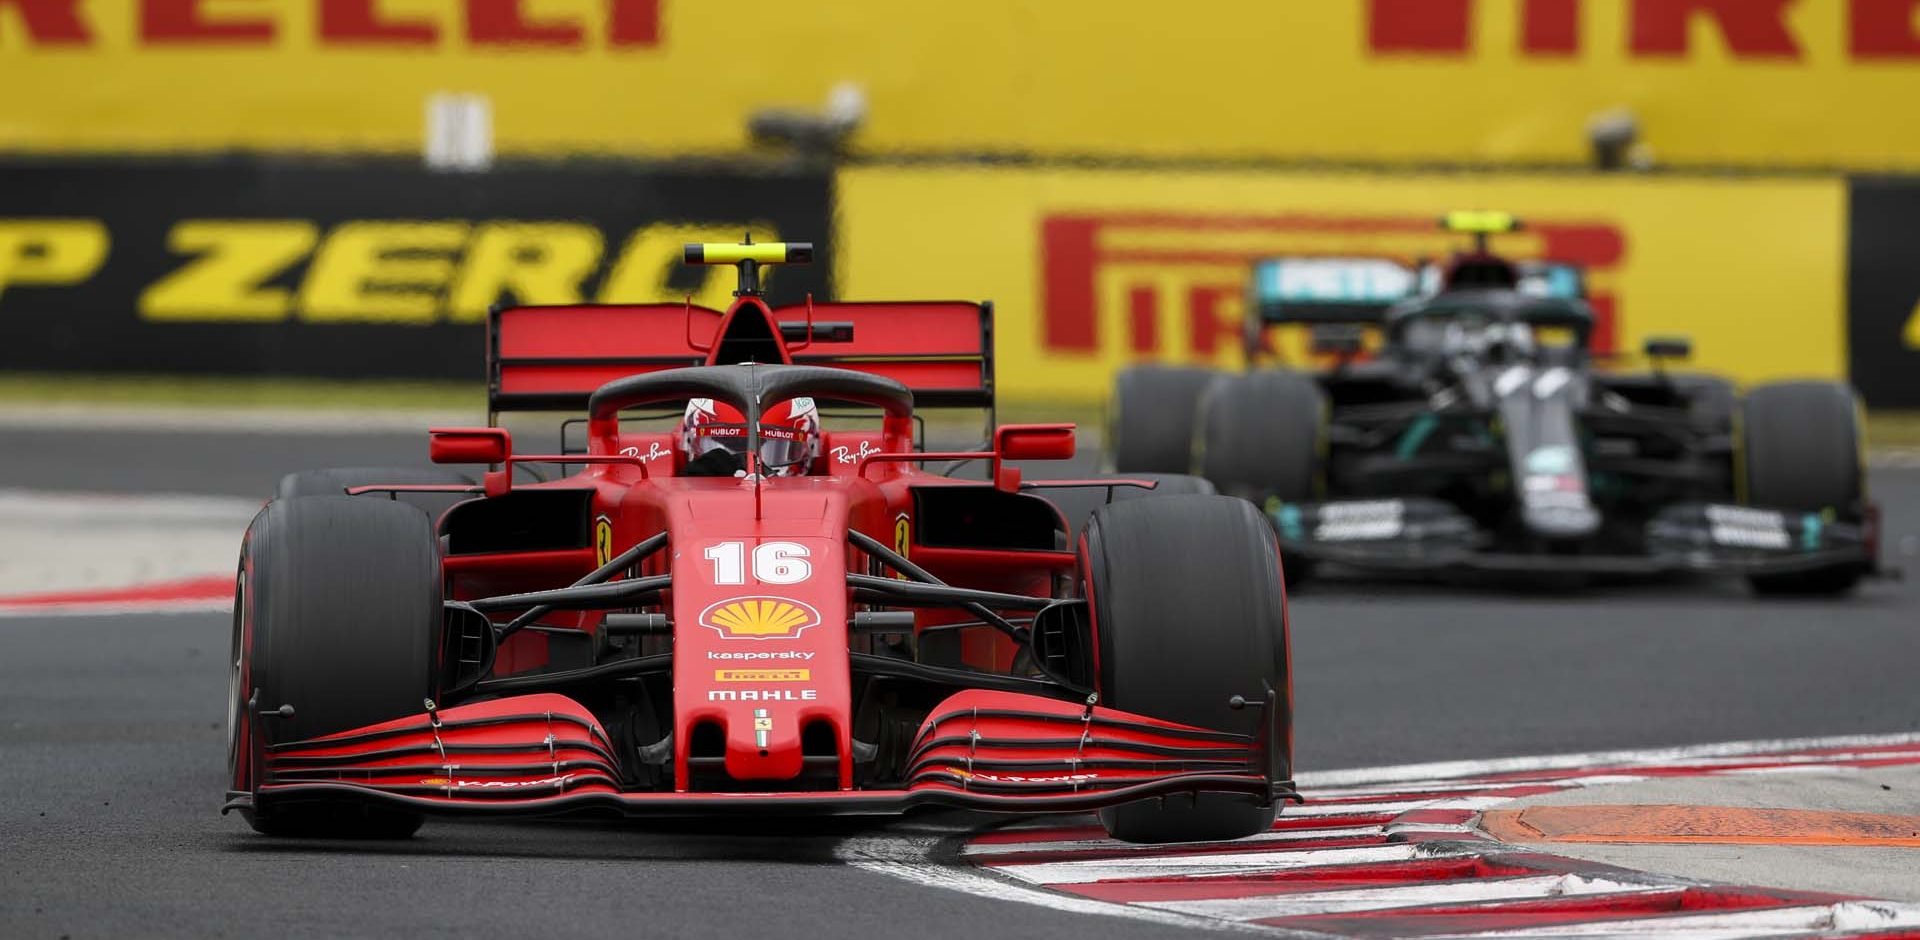 HUNGARORING, HUNGARY - JULY 19: Charles Leclerc, Ferrari SF1000, leads Valtteri Bottas, Mercedes F1 W11 EQ Performance during the Hungarian GP at Hungaroring on Sunday July 19, 2020 in Budapest, Hungary. (Photo by Charles Coates / LAT Images)